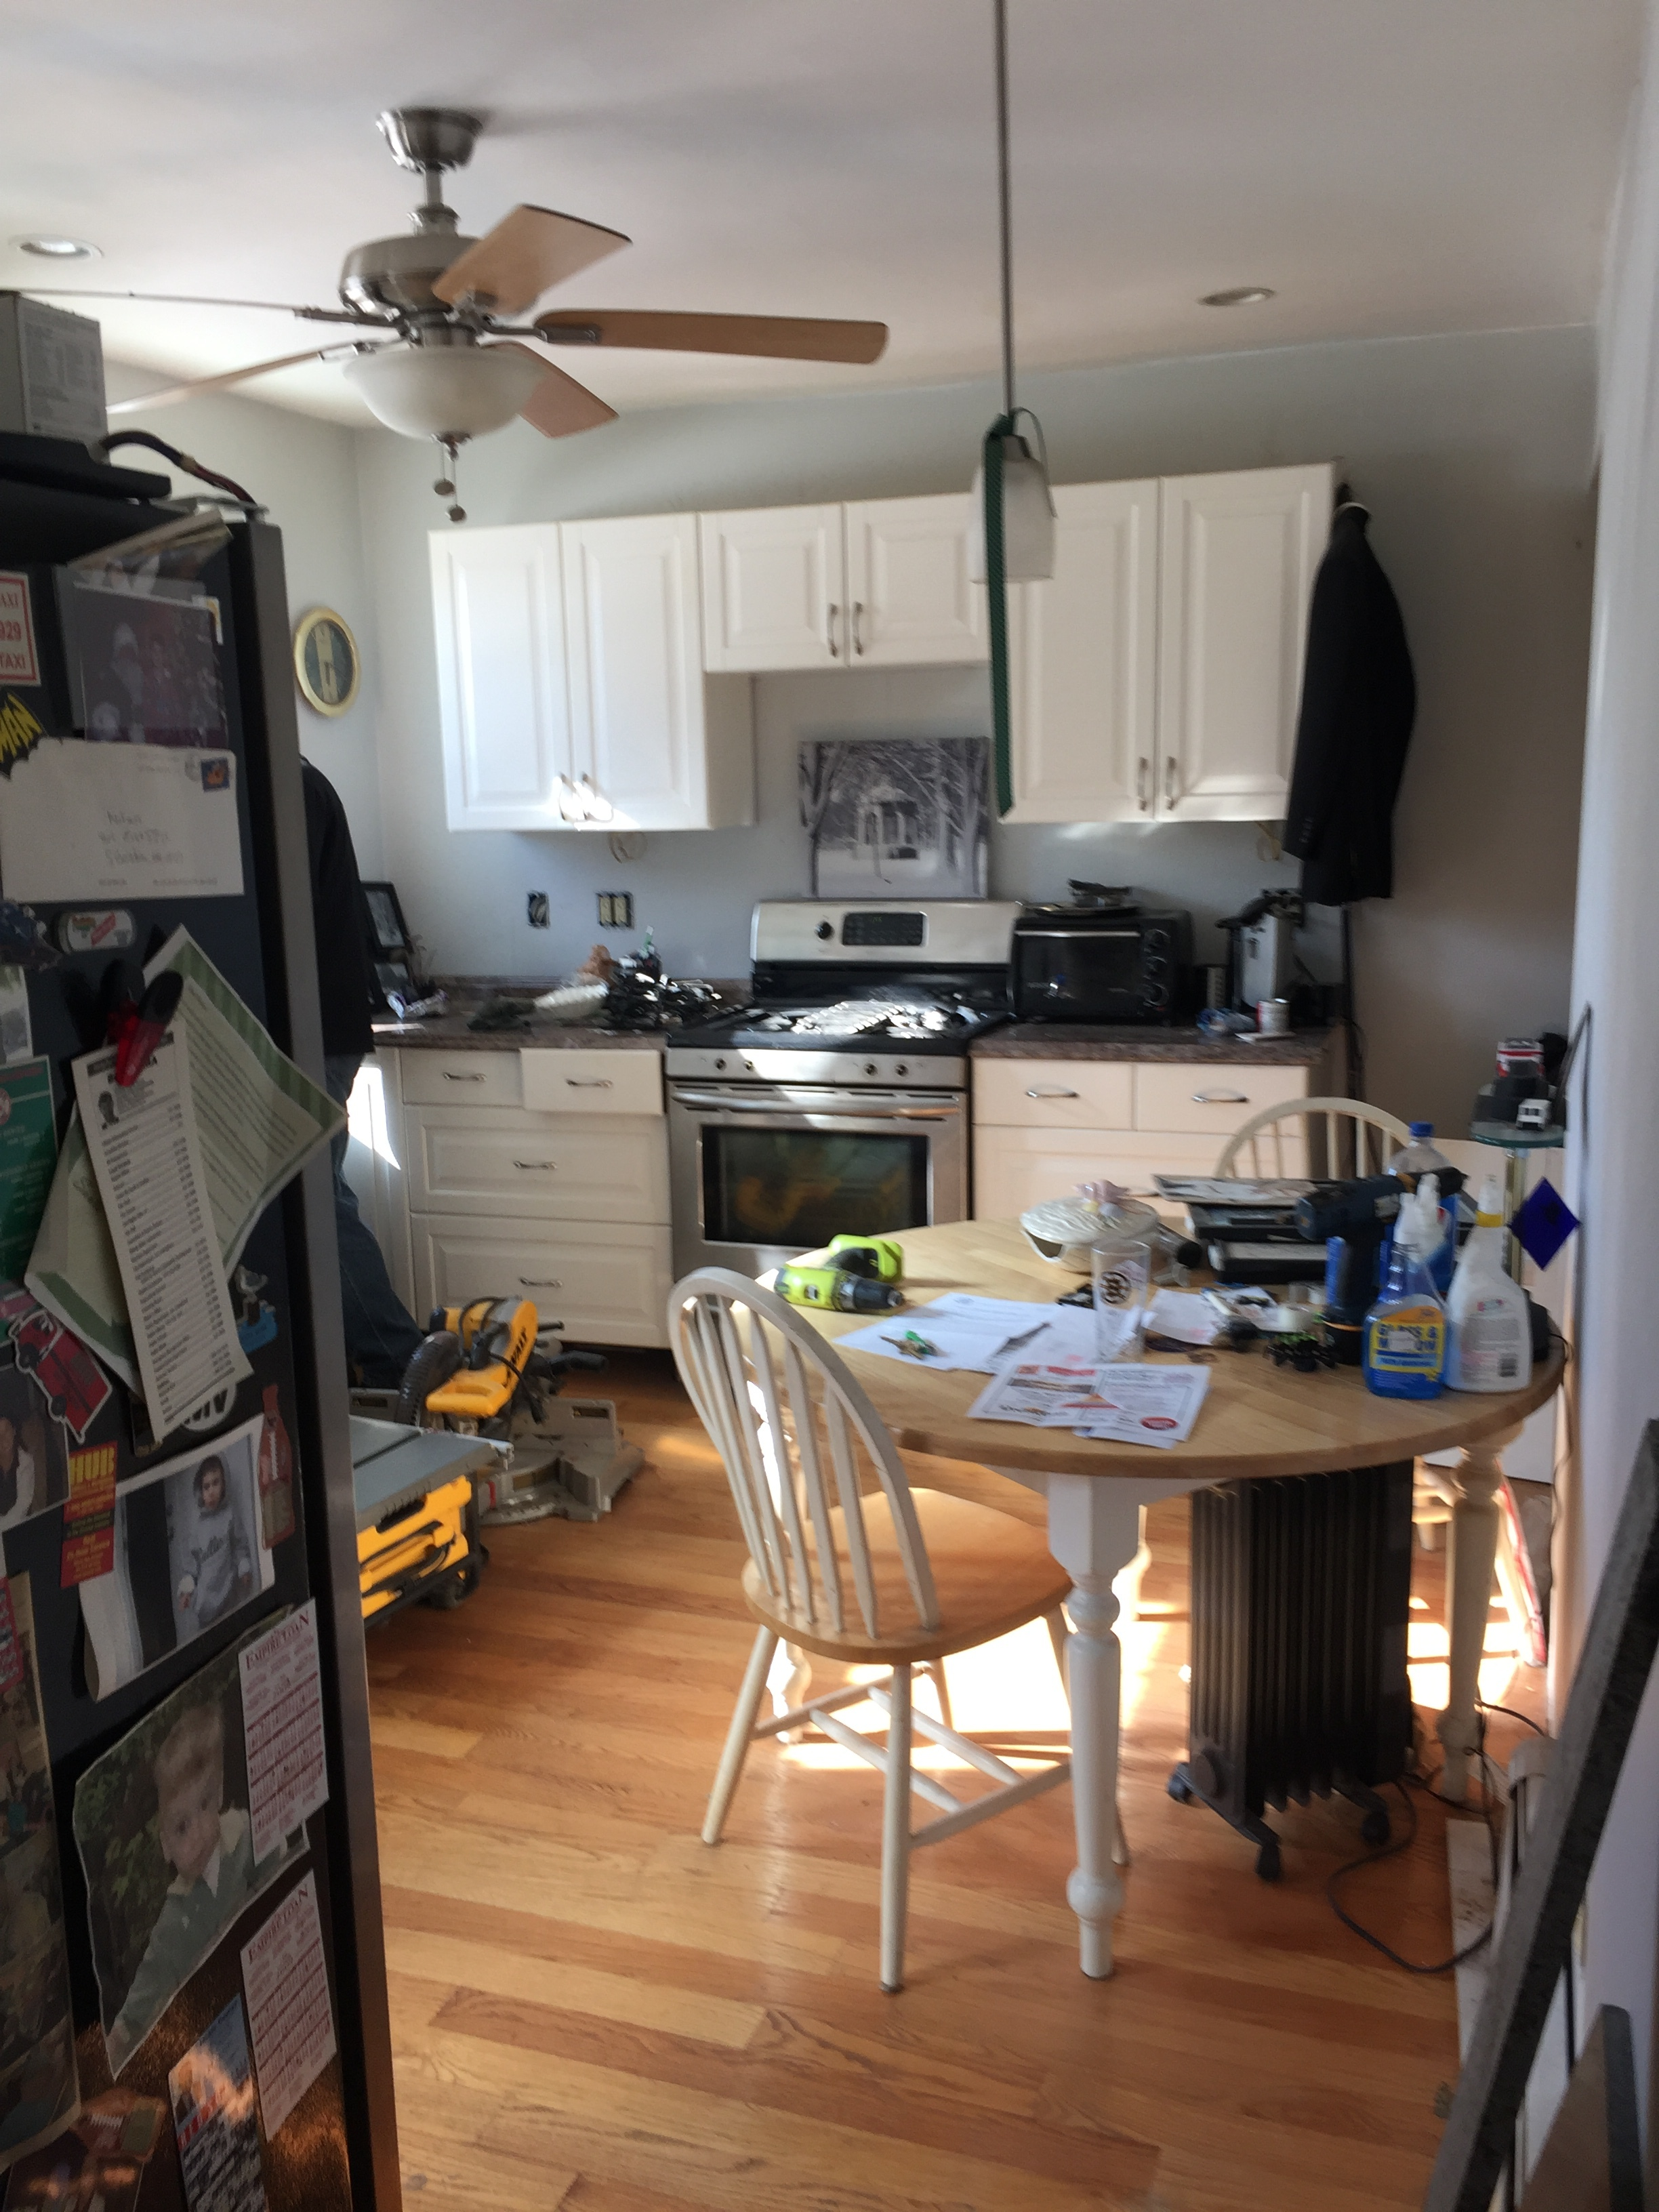 The cramped kitchen layout needs to be re-worked.